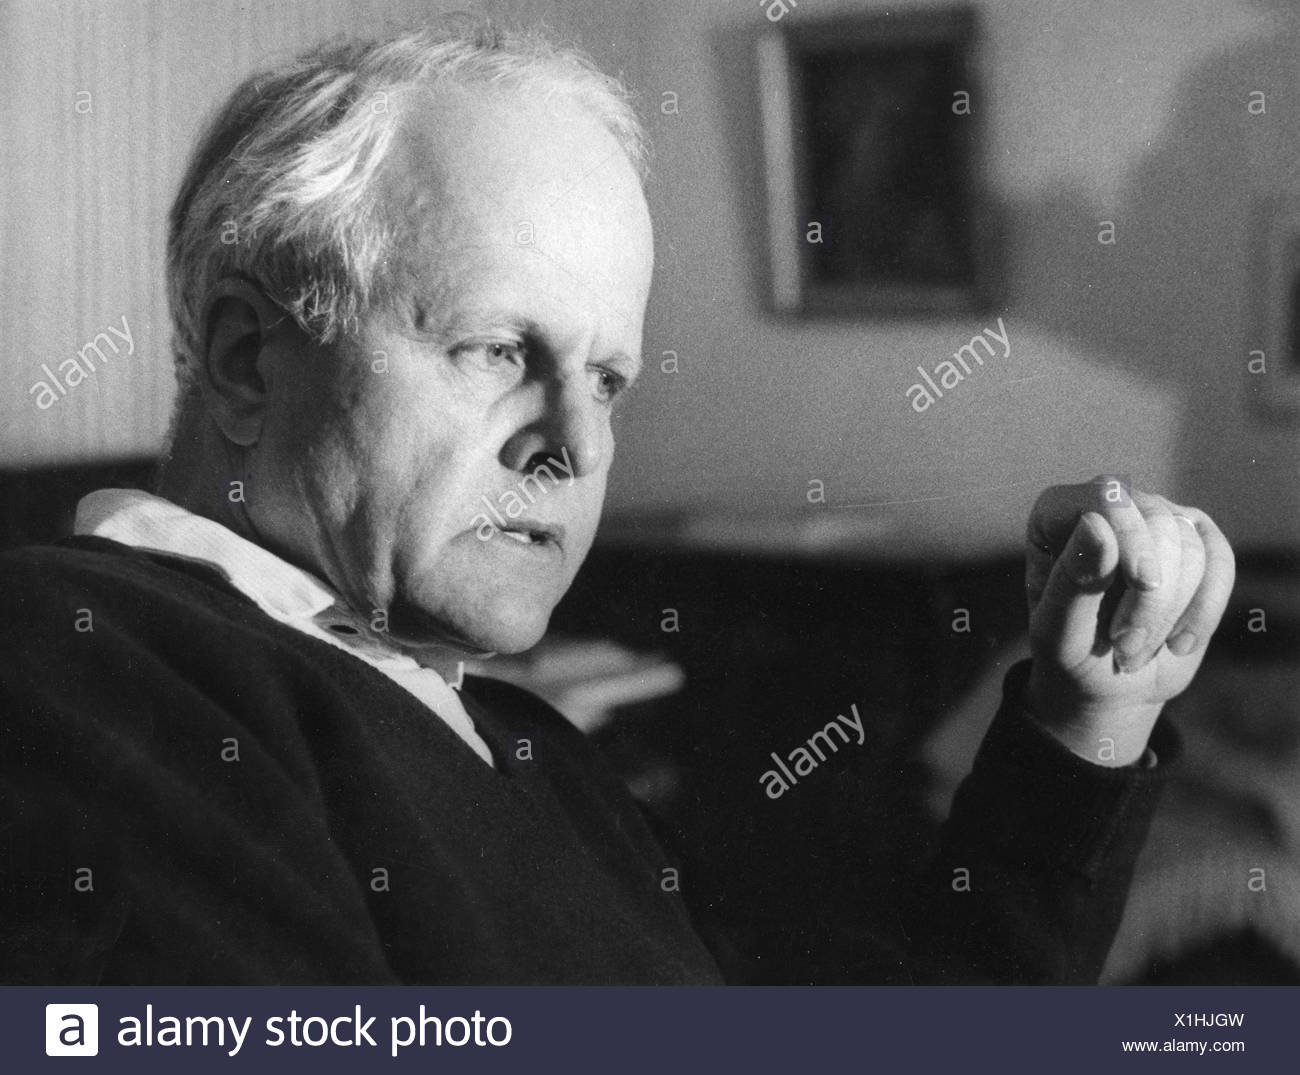 Weizsäcker, Carl Friedrich von, 28.6.1912 - 28.4.2007, German scientist (physics) and philosopher, portrait, 1971, Additional-Rights-Clearances-NA - Stock Image